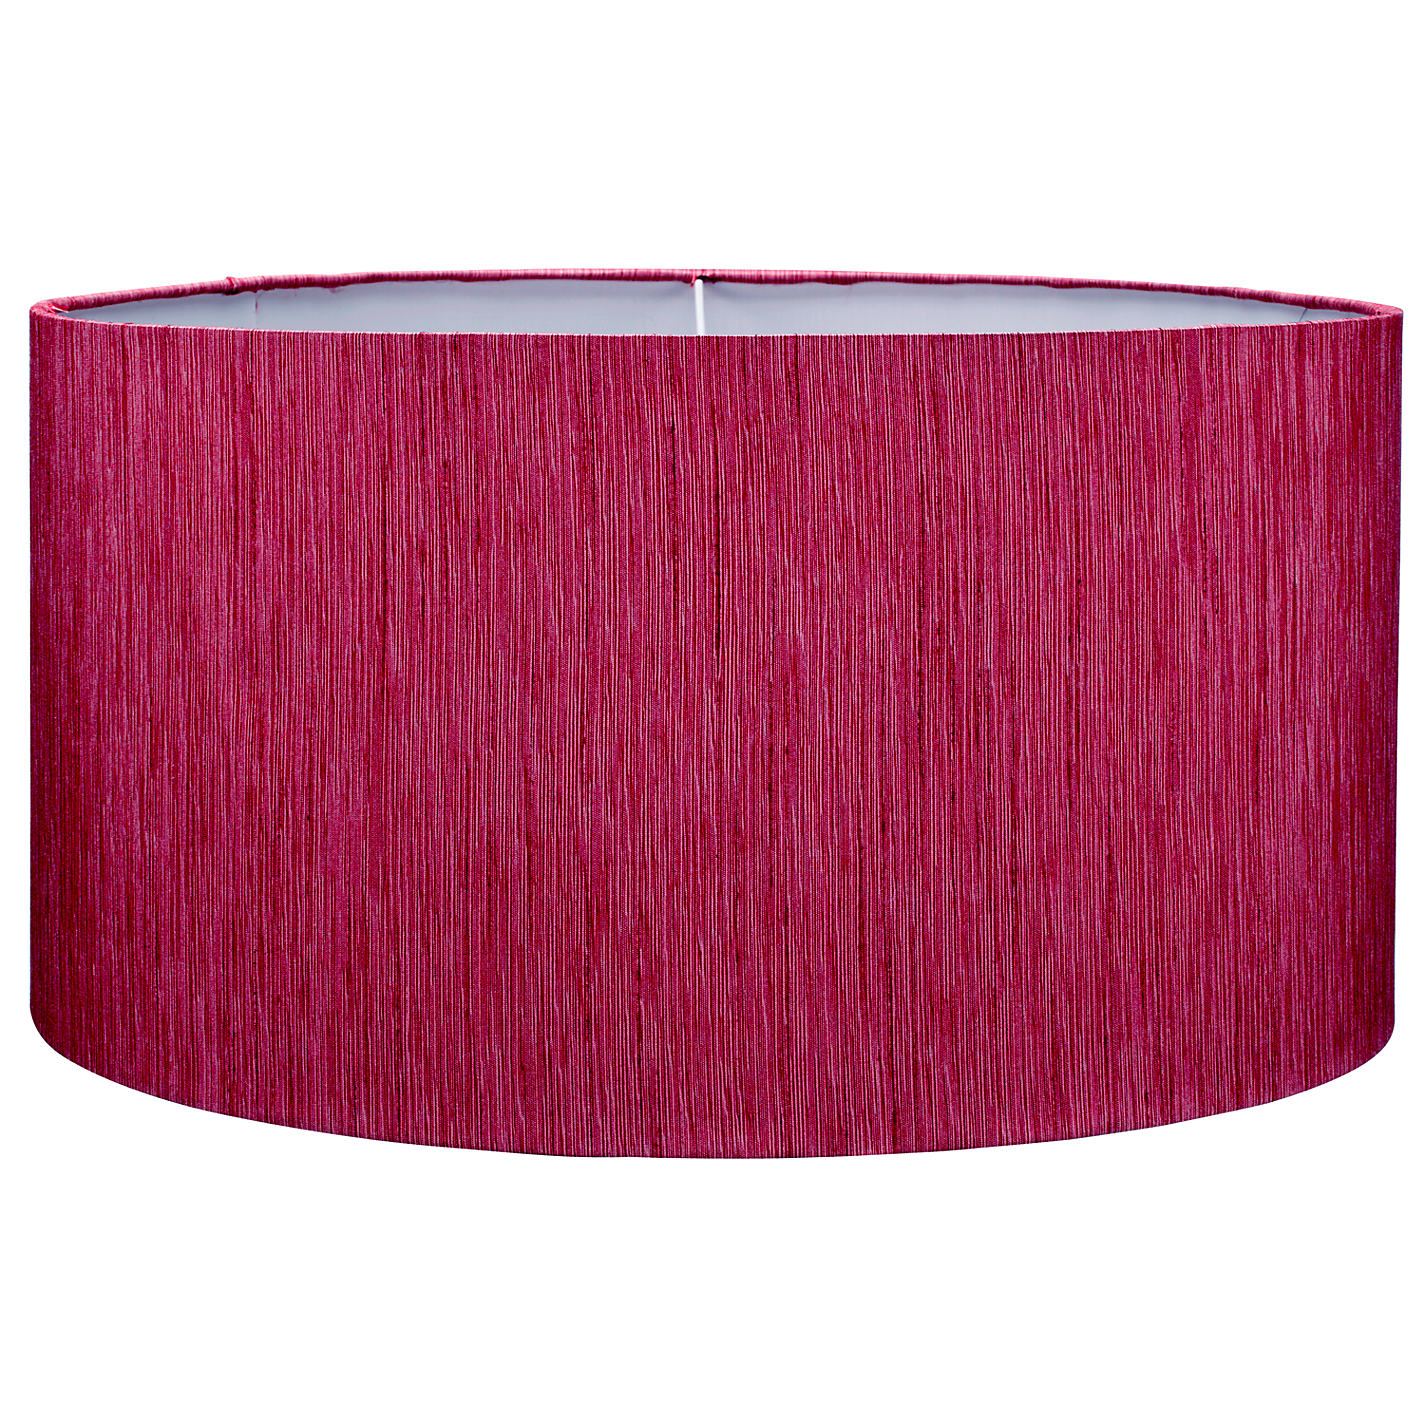 Red ceiling lamp shades john lewis buy harlequin juniper drum shade online at johnlewis aloadofball Image collections